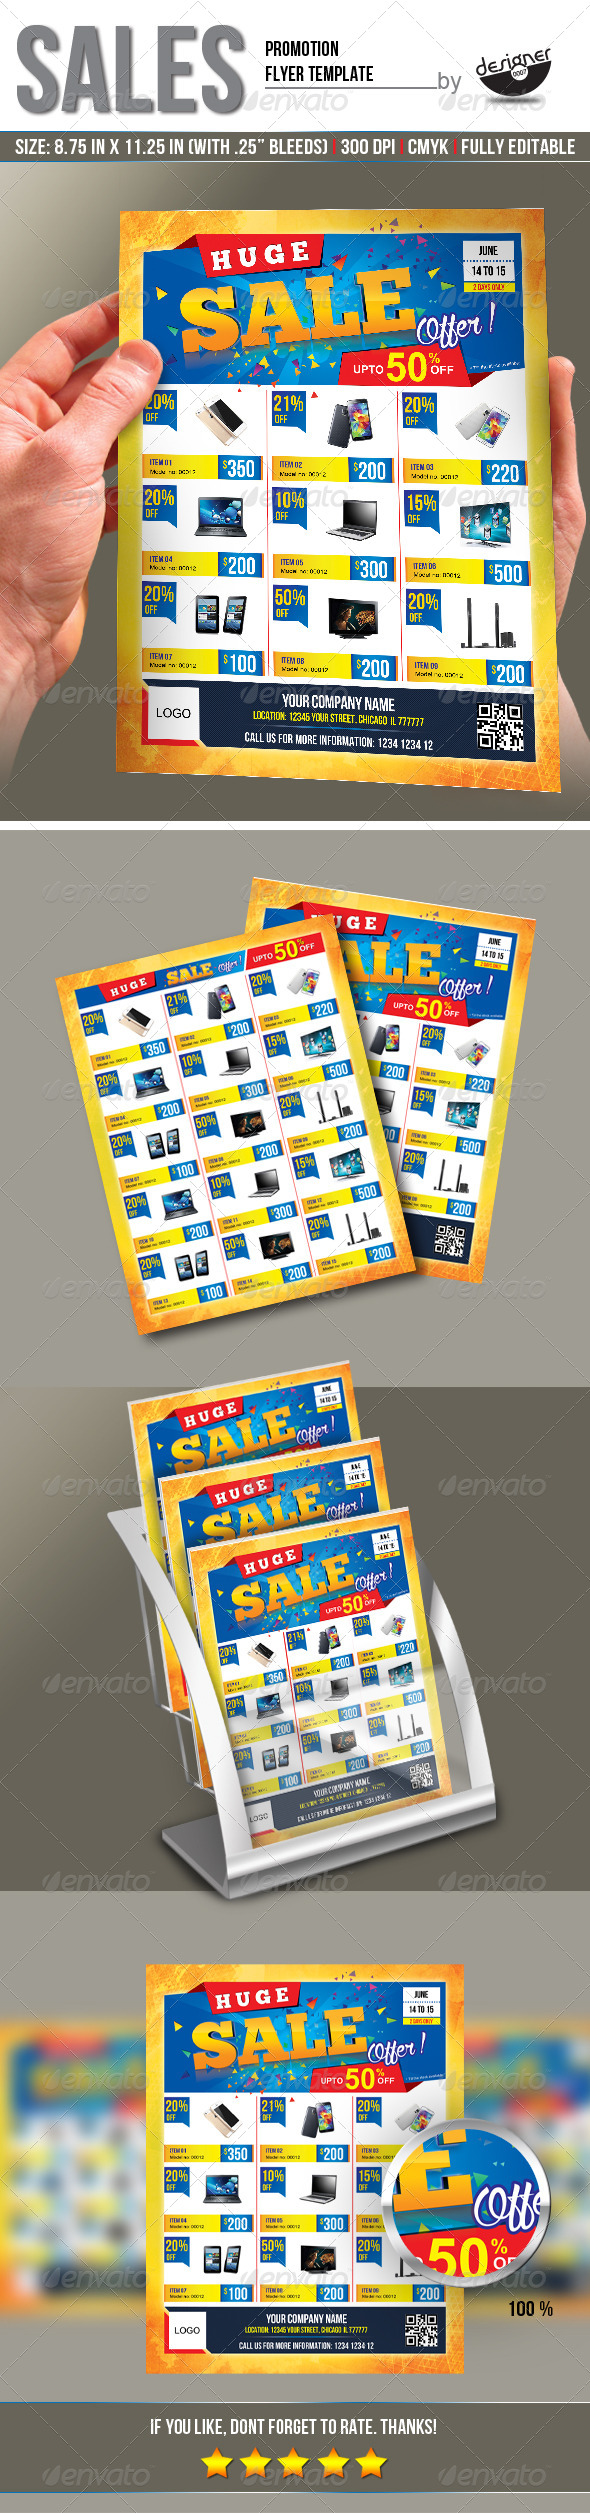 GraphicRiver Sales Promotion Flyer Template 8333281